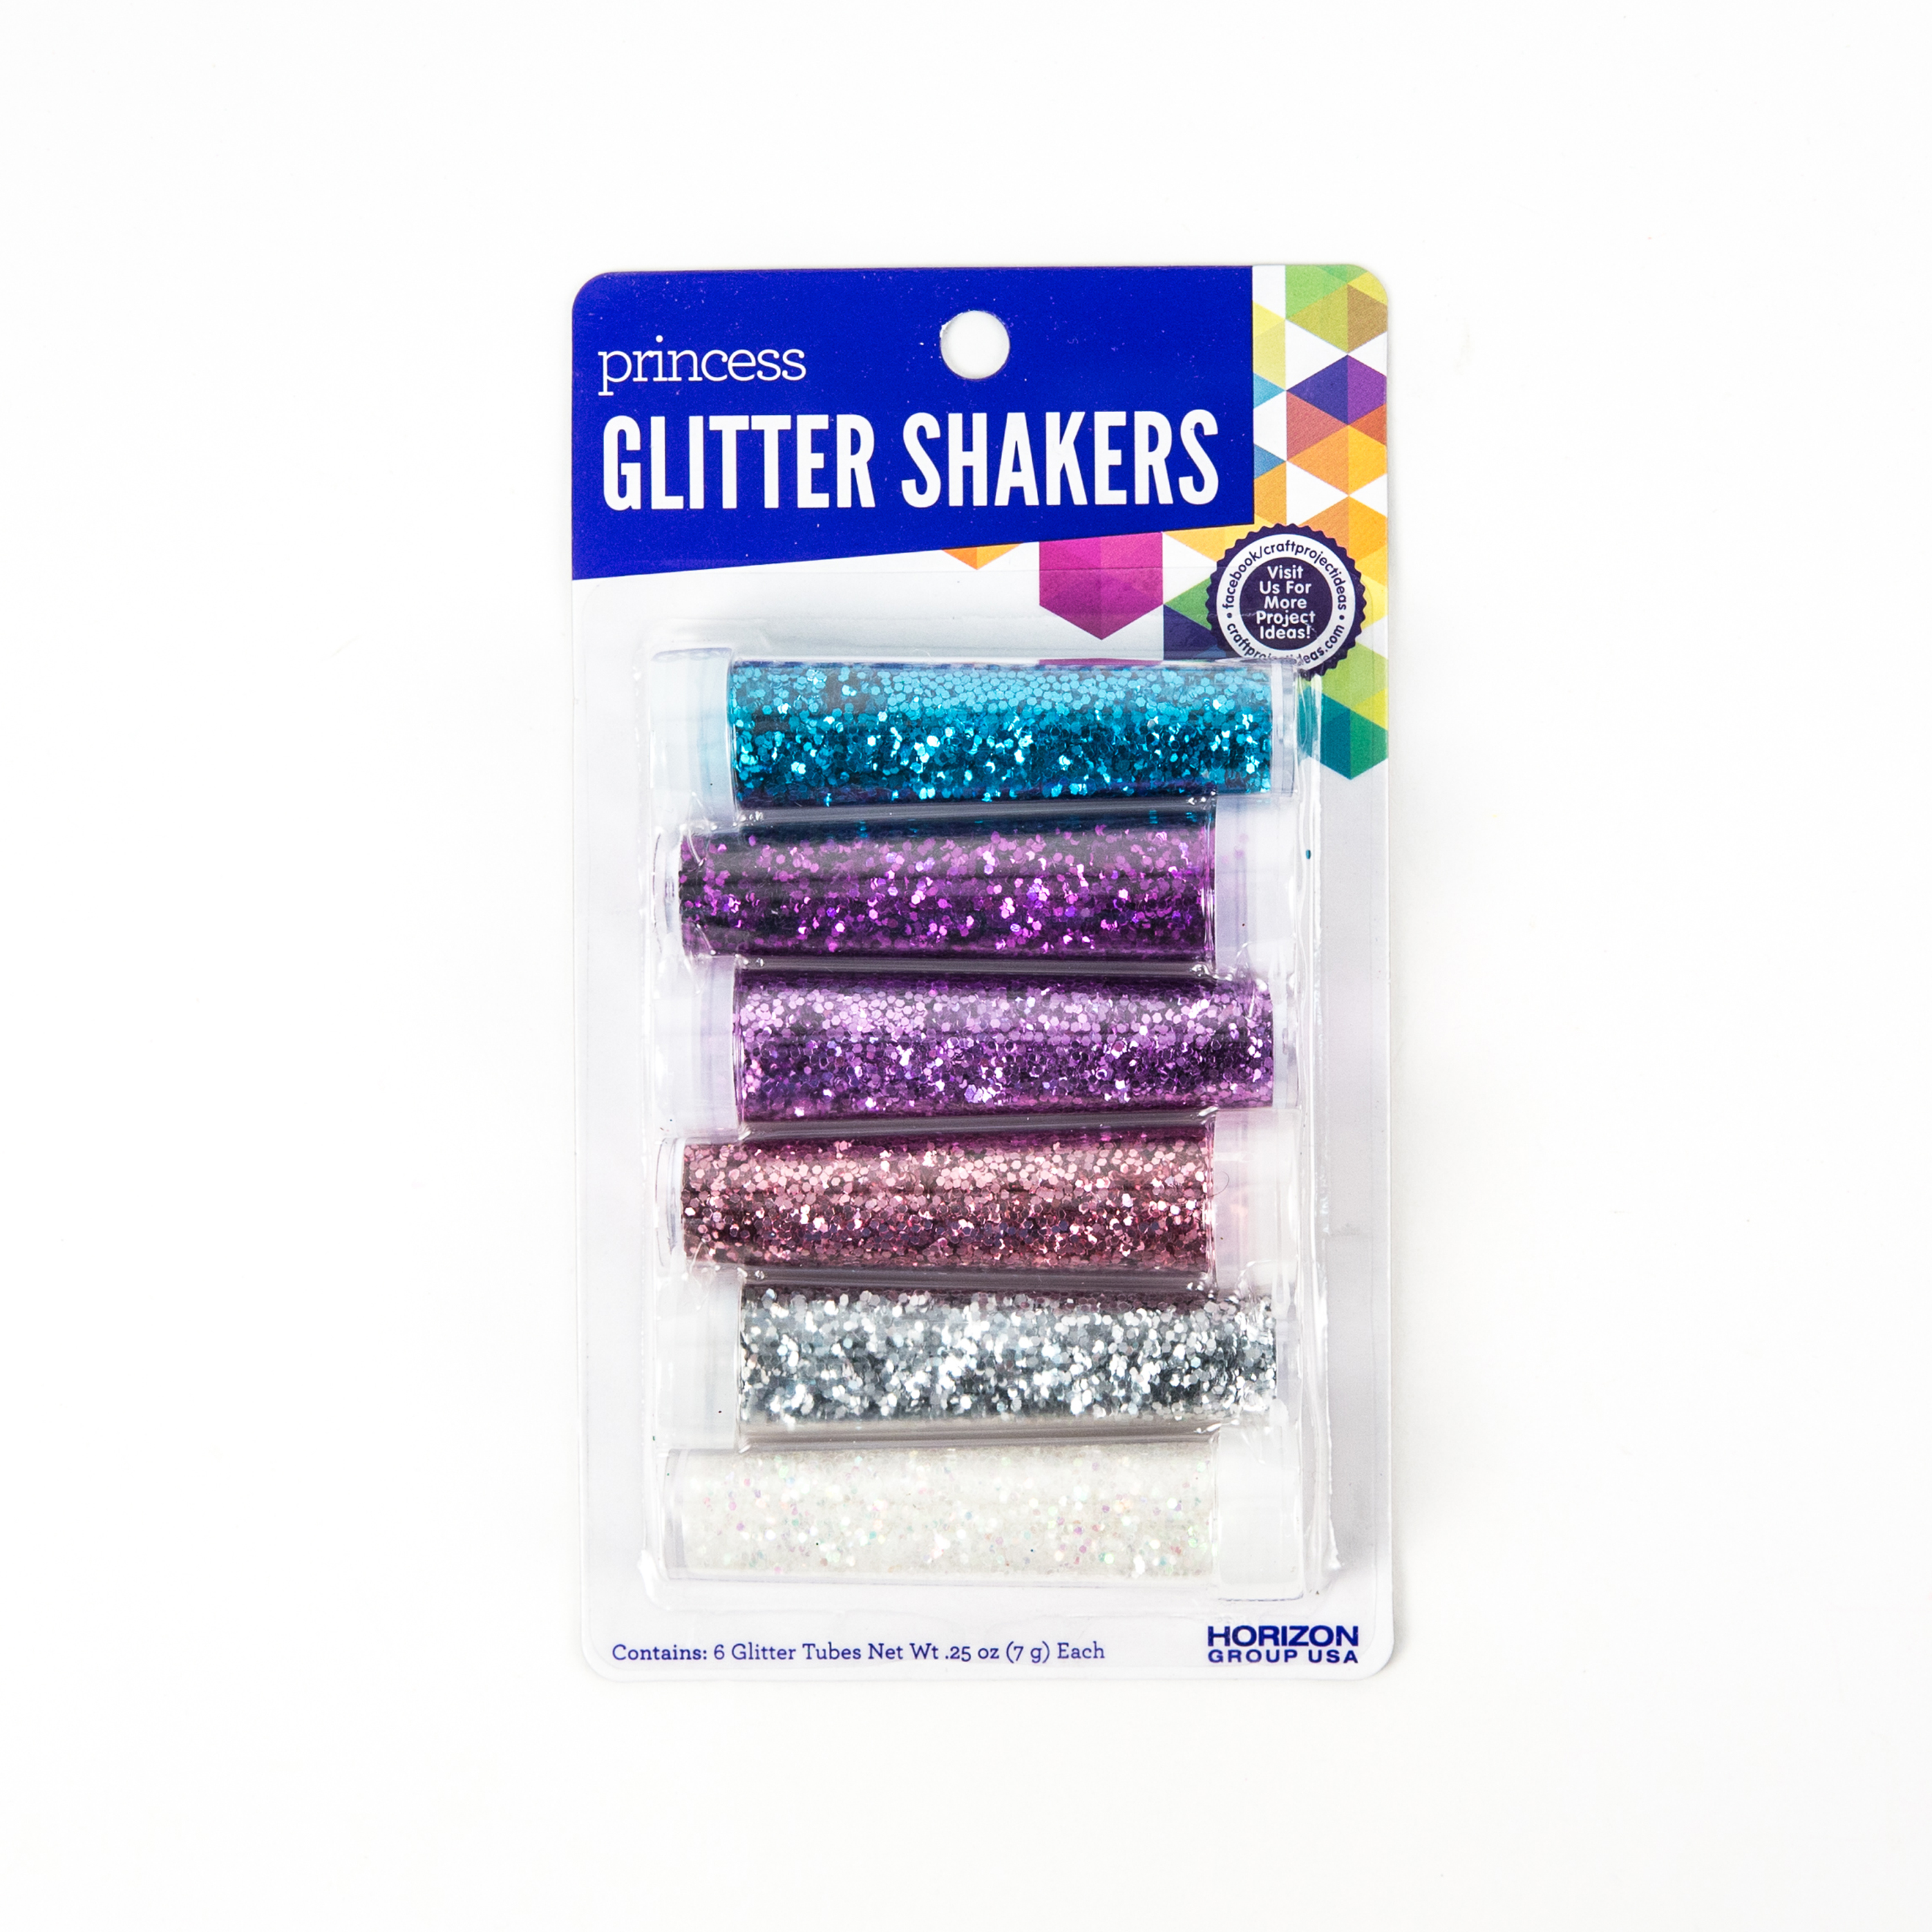 Princess Glitter Shakers, 6ct.